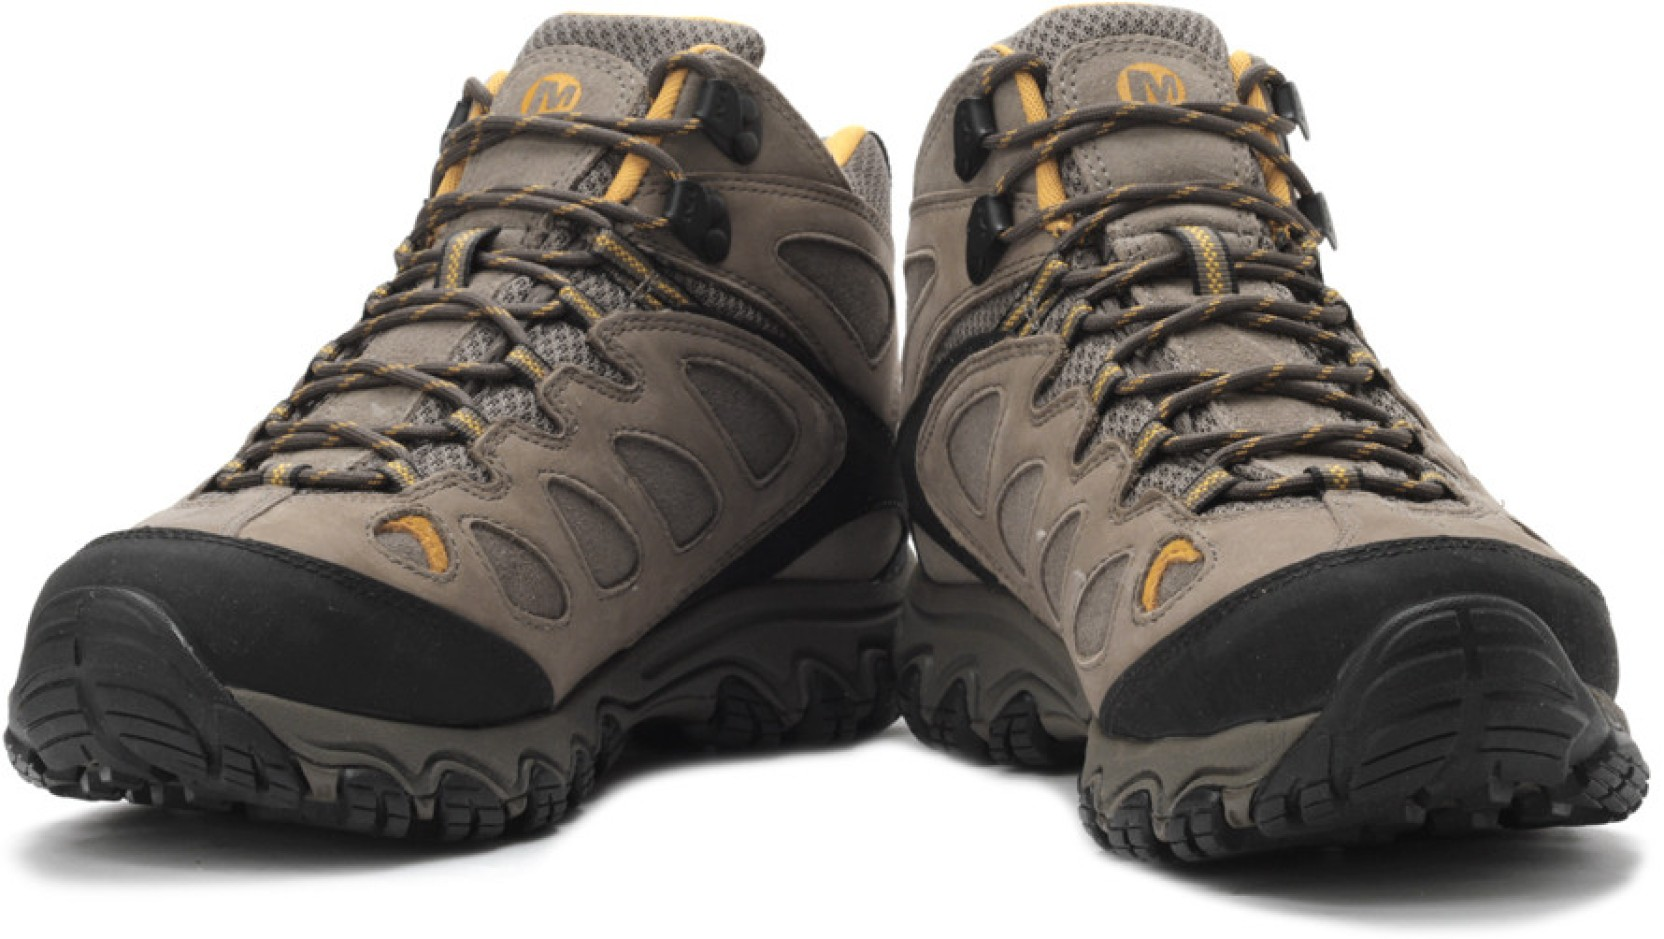 Best Waterproof Trekking Shoes In India